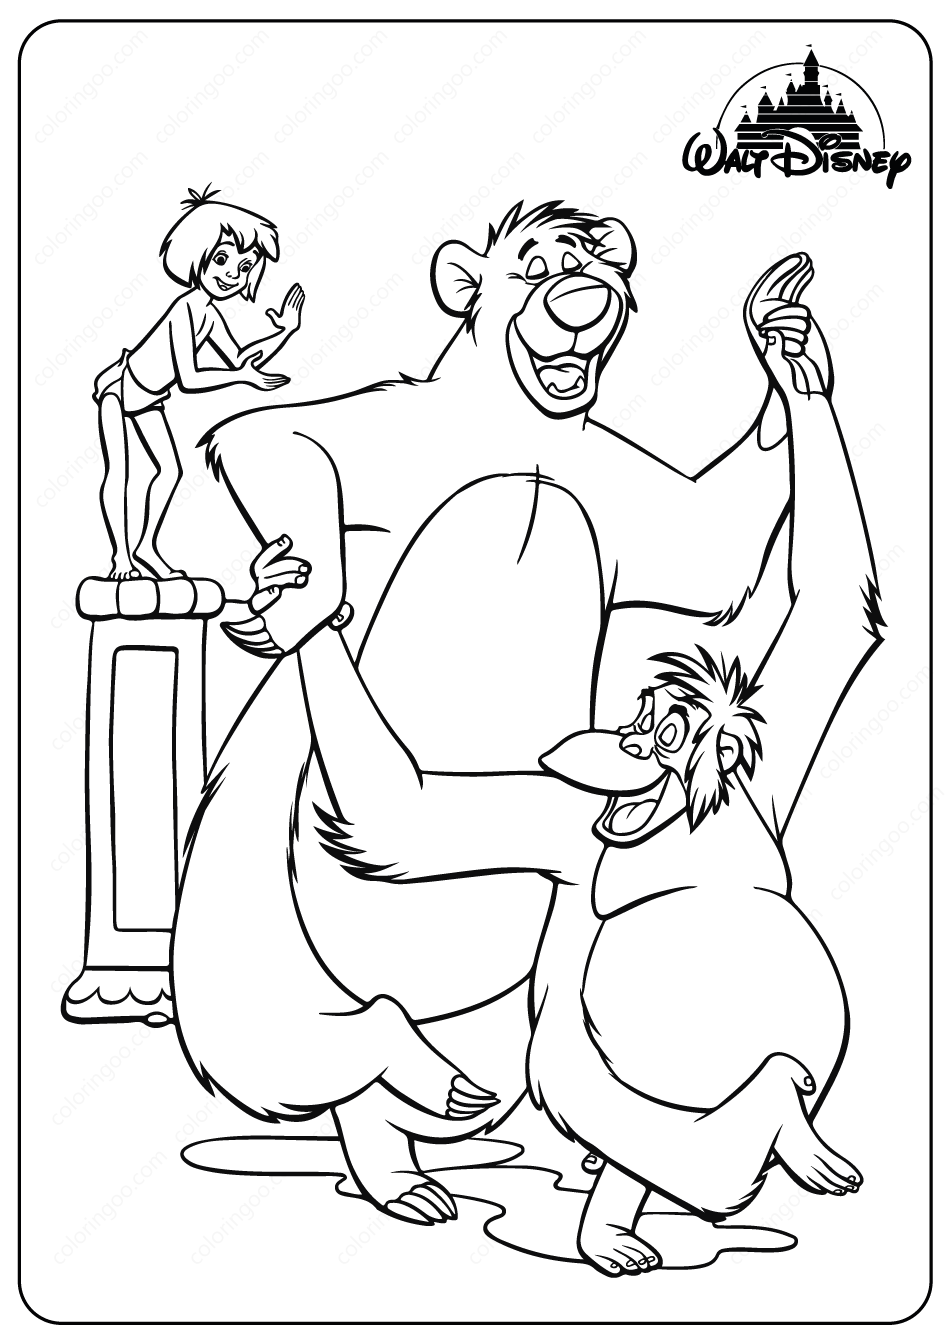 jungle book coloring pages the jungle book coloring pages disneyclipscom jungle book coloring pages